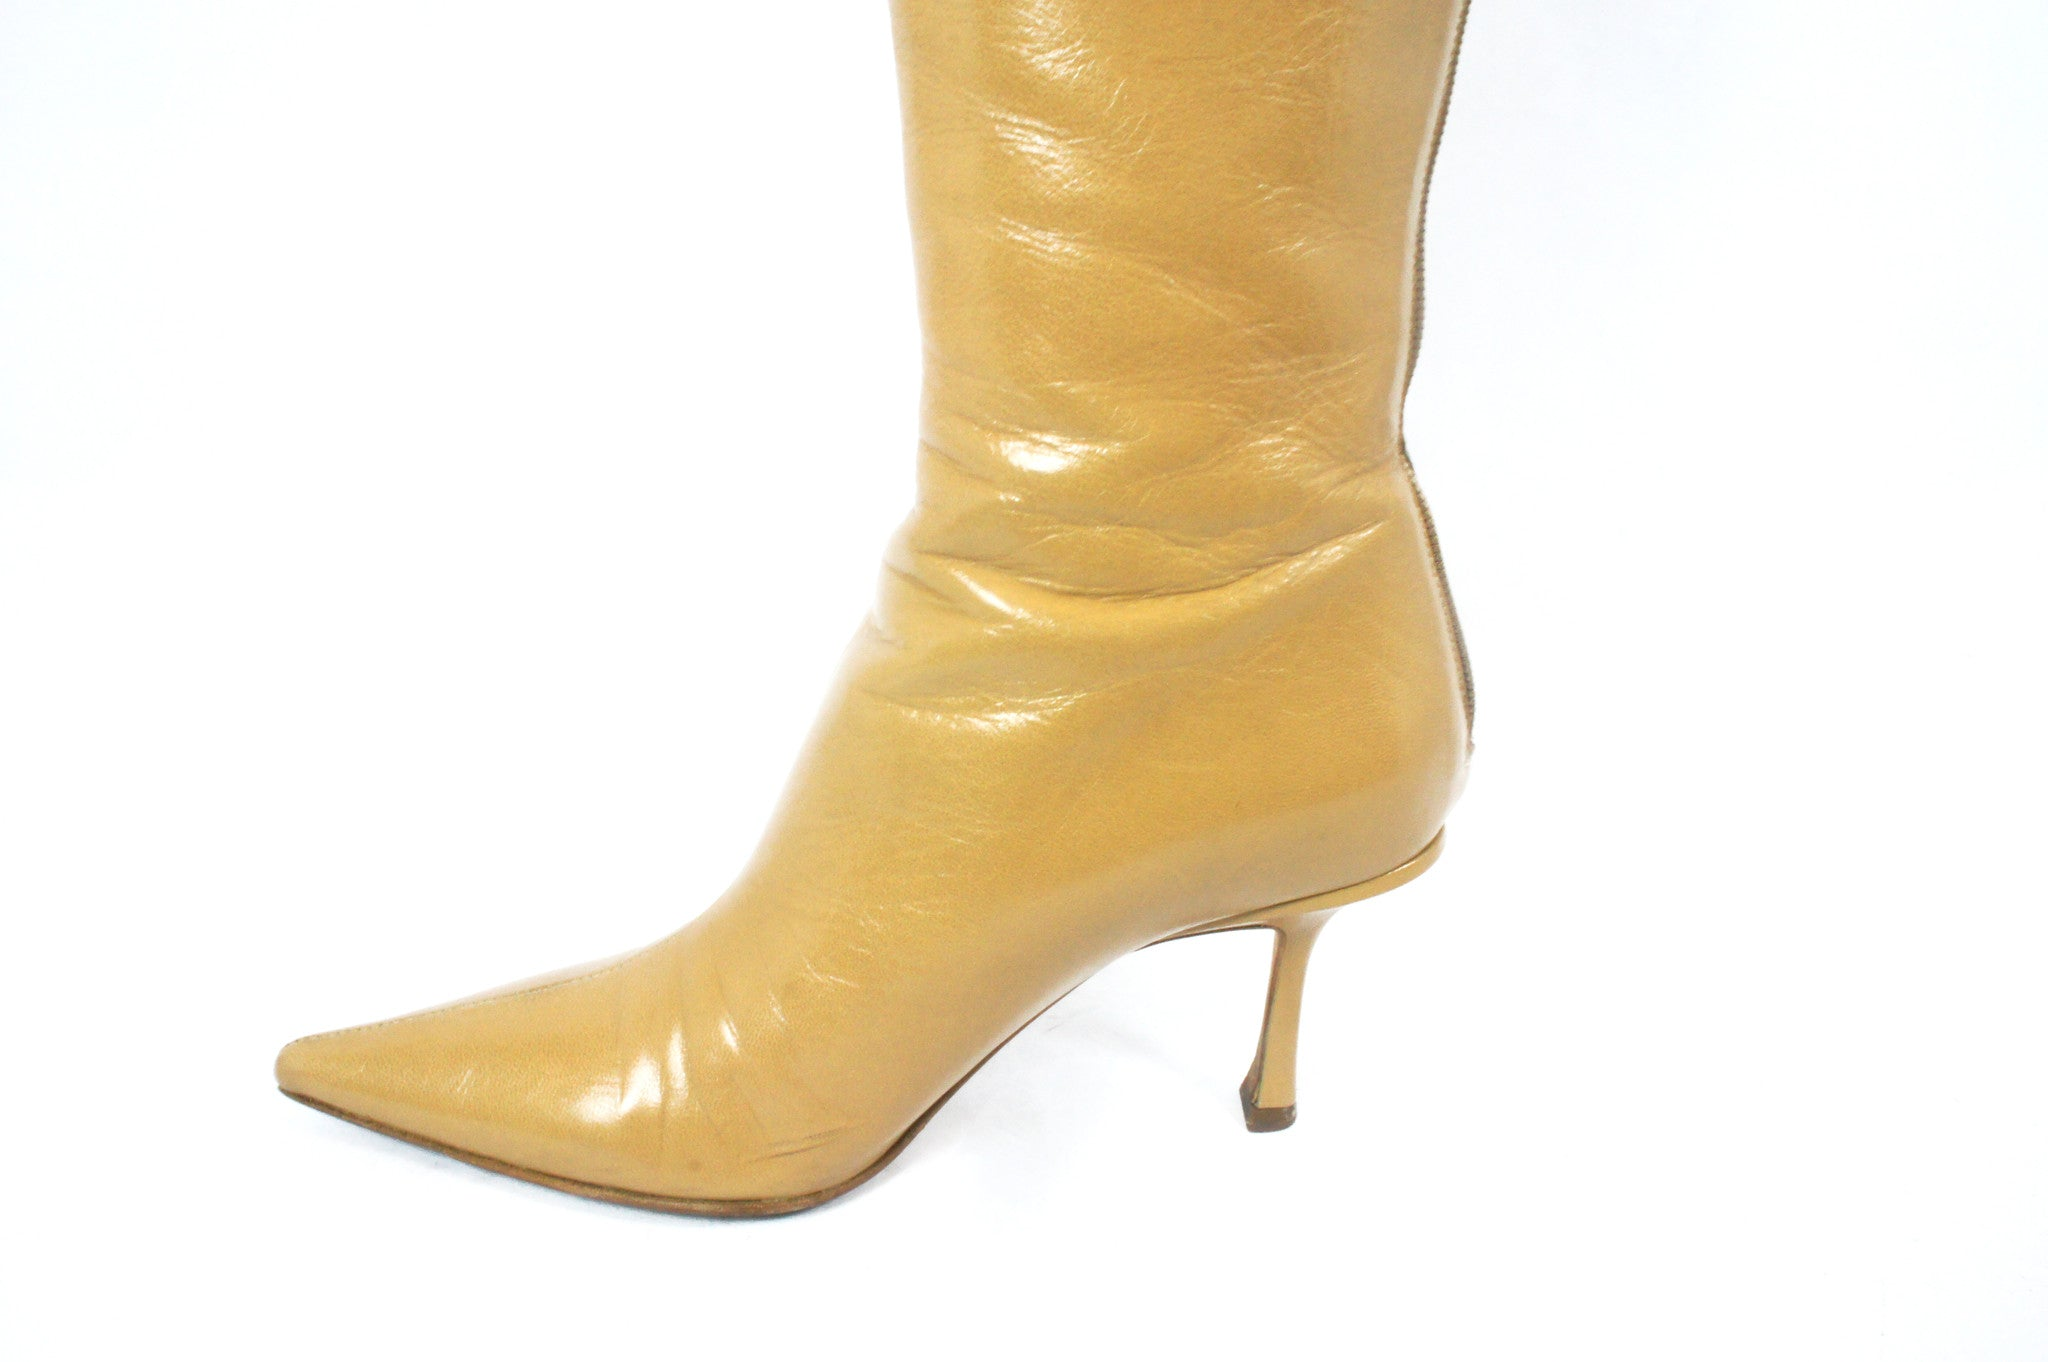 Jimmy Choo Beige Knee High Boots (Size 36.5) - Encore Consignment - 5